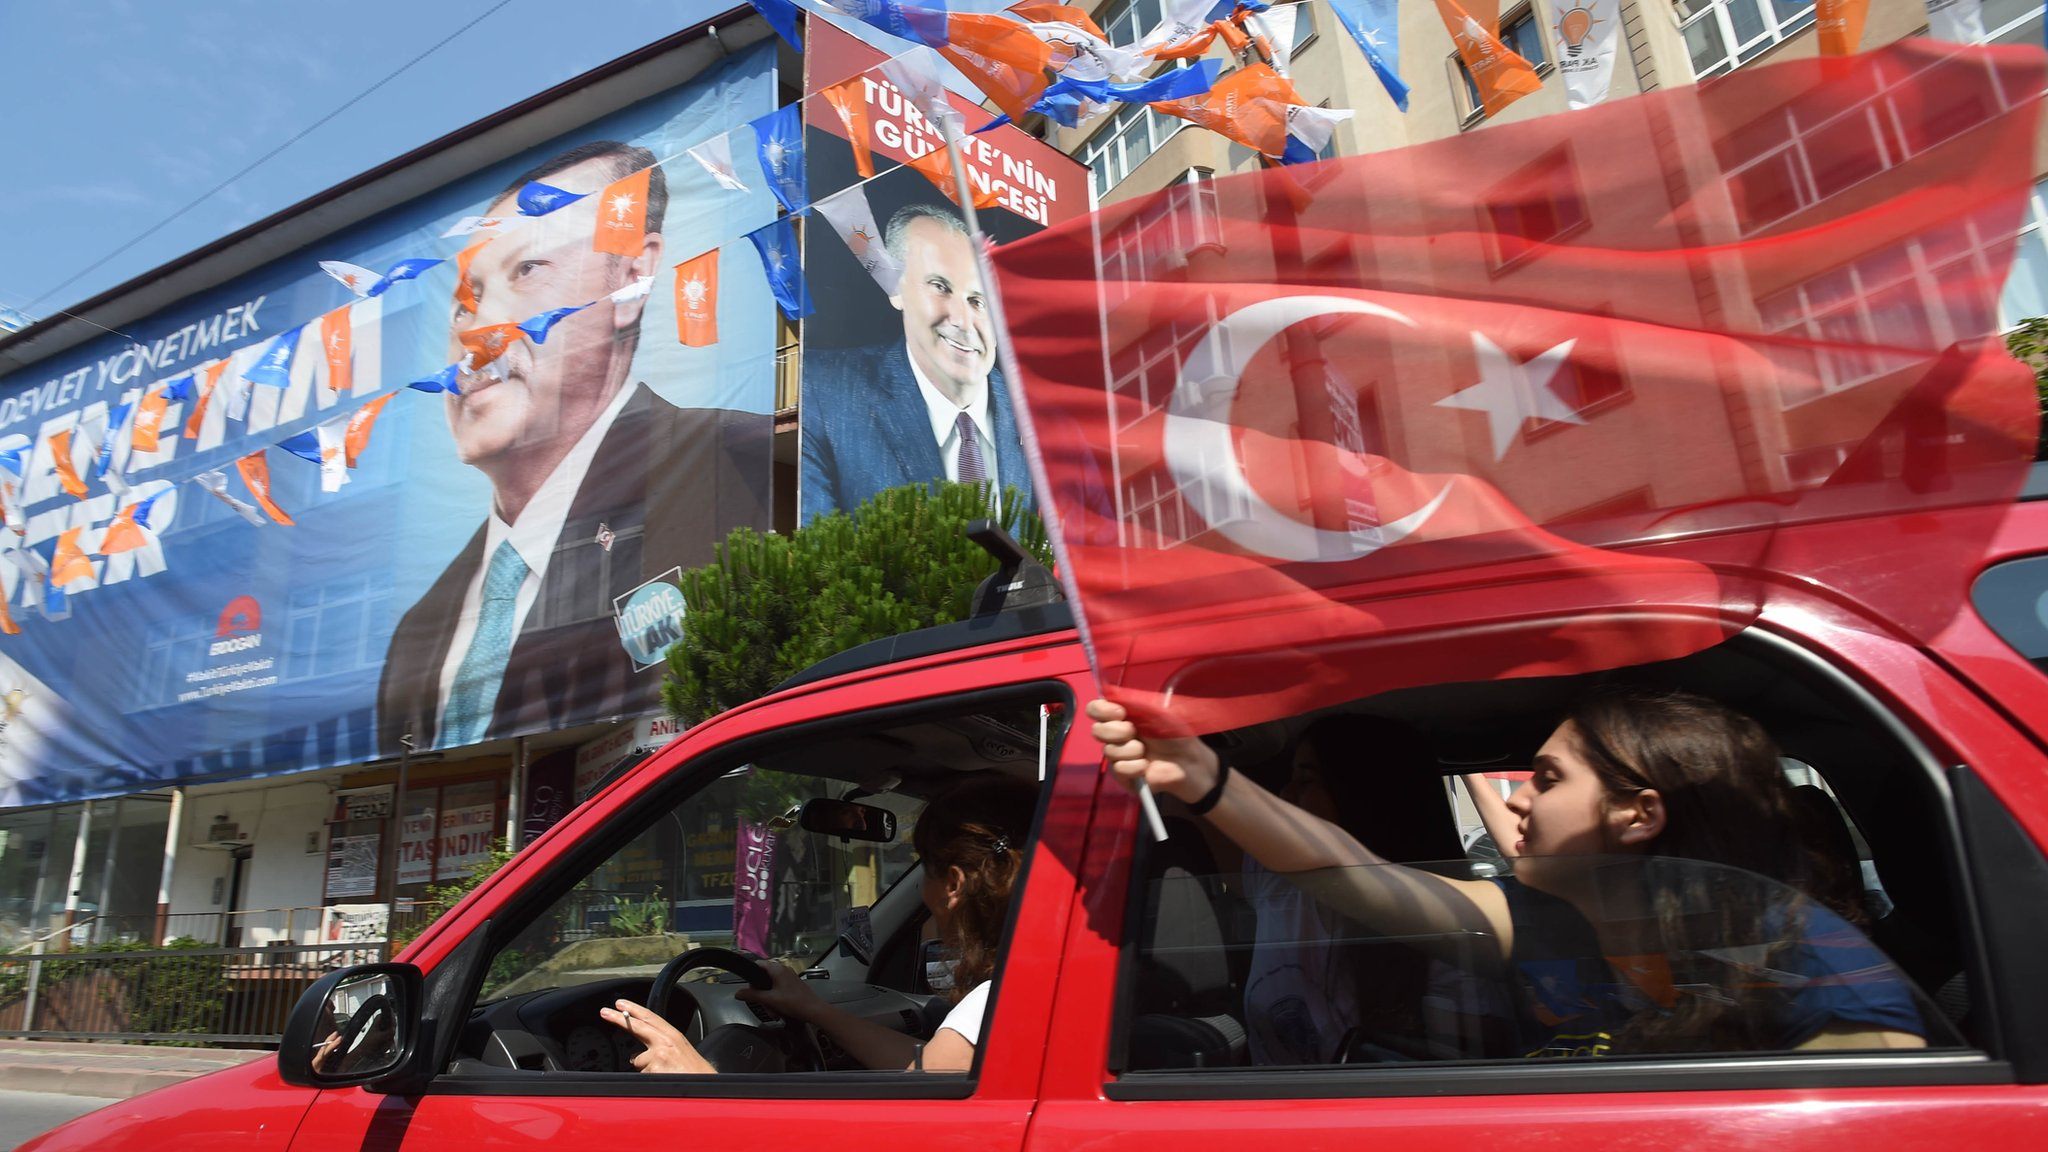 Turkey election: Erdogan seeks second term in hard-fought contest